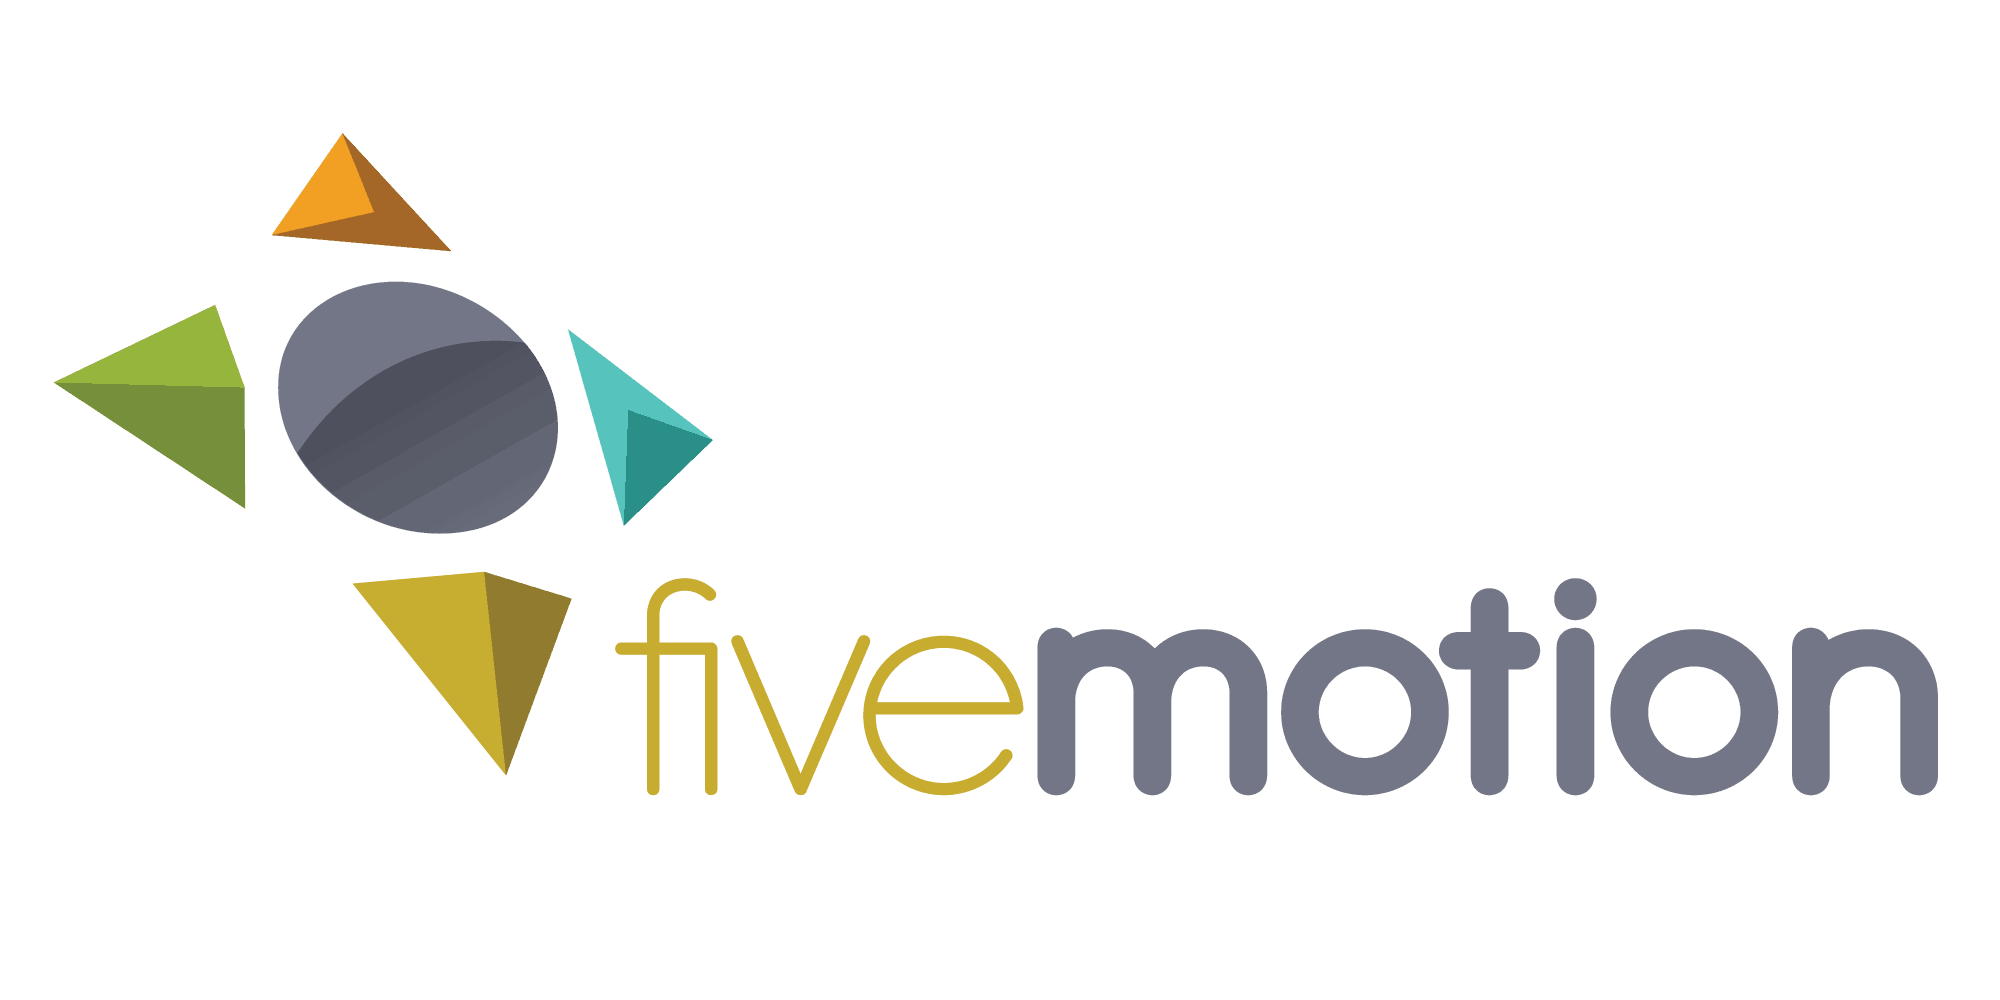 Five Motion logo